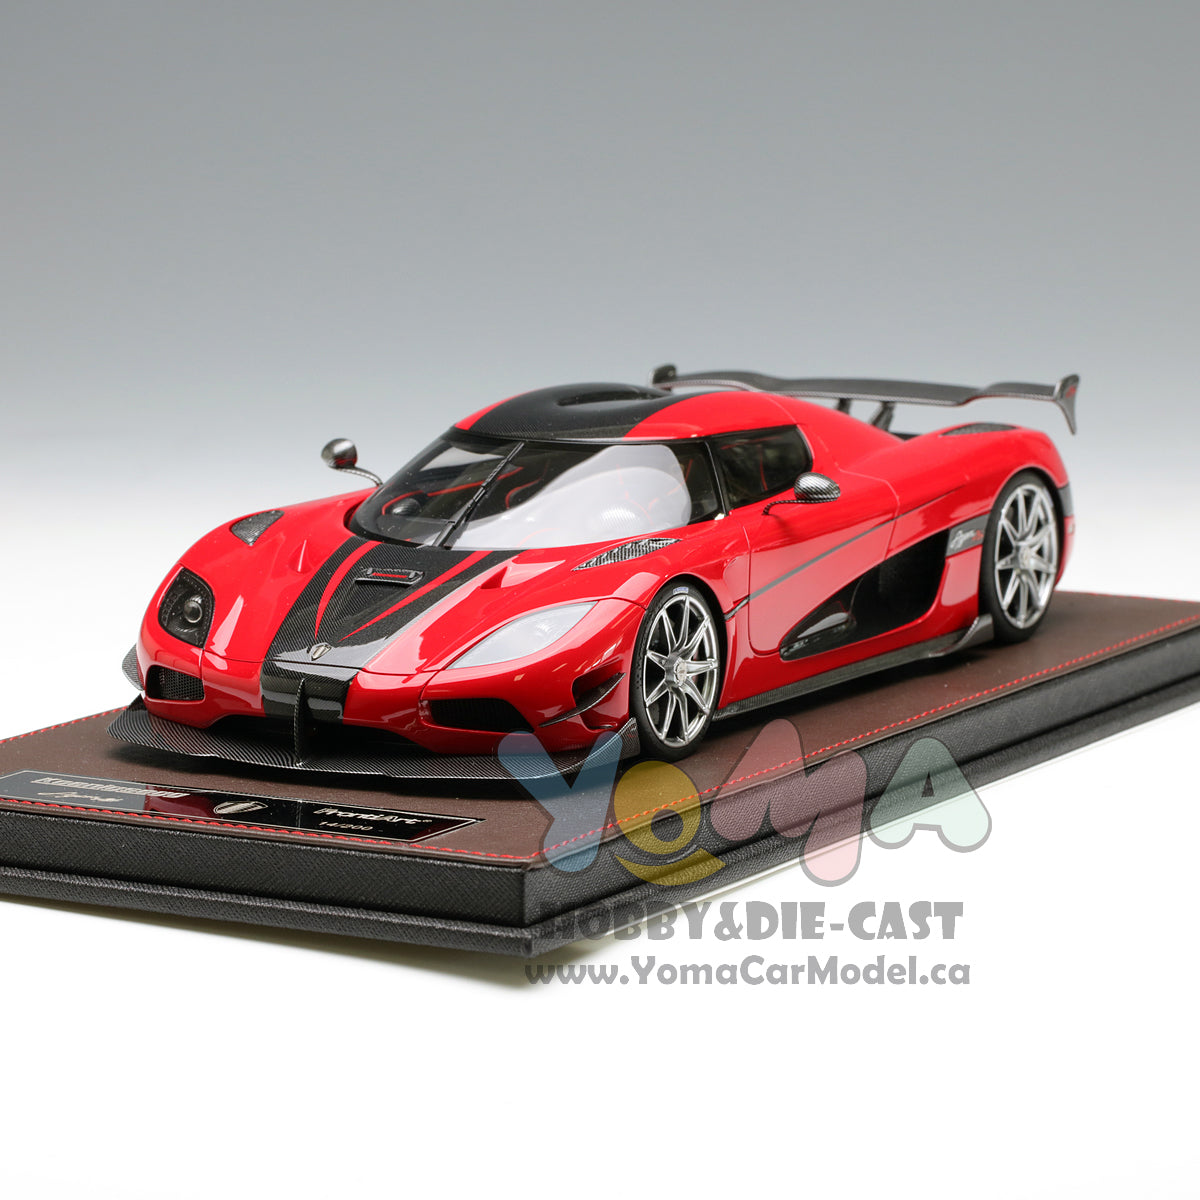 Koenigsegg Agera Rs Red: Frontiart 1/18 Koenigsegg Agera RS Red/Black F042-06